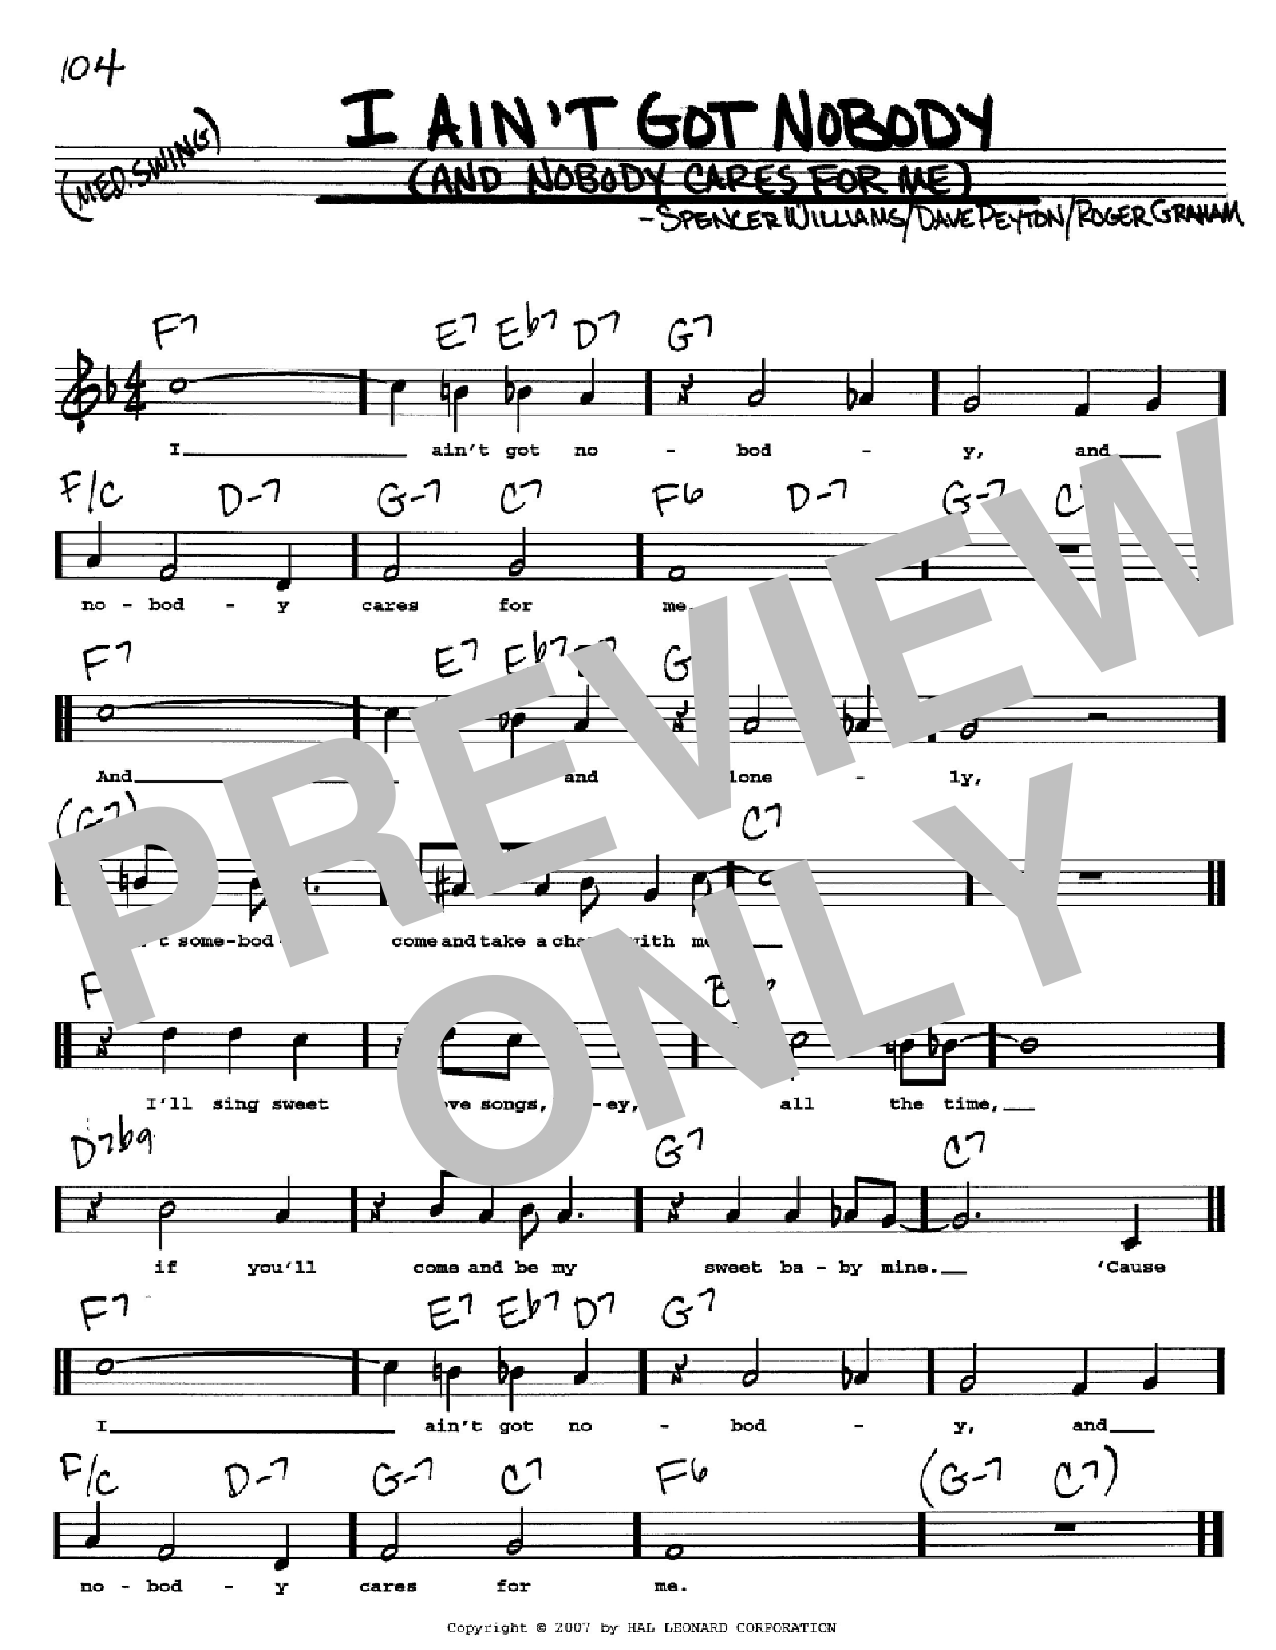 I Ain't Got Nobody (And Nobody Cares For Me) Sheet Music